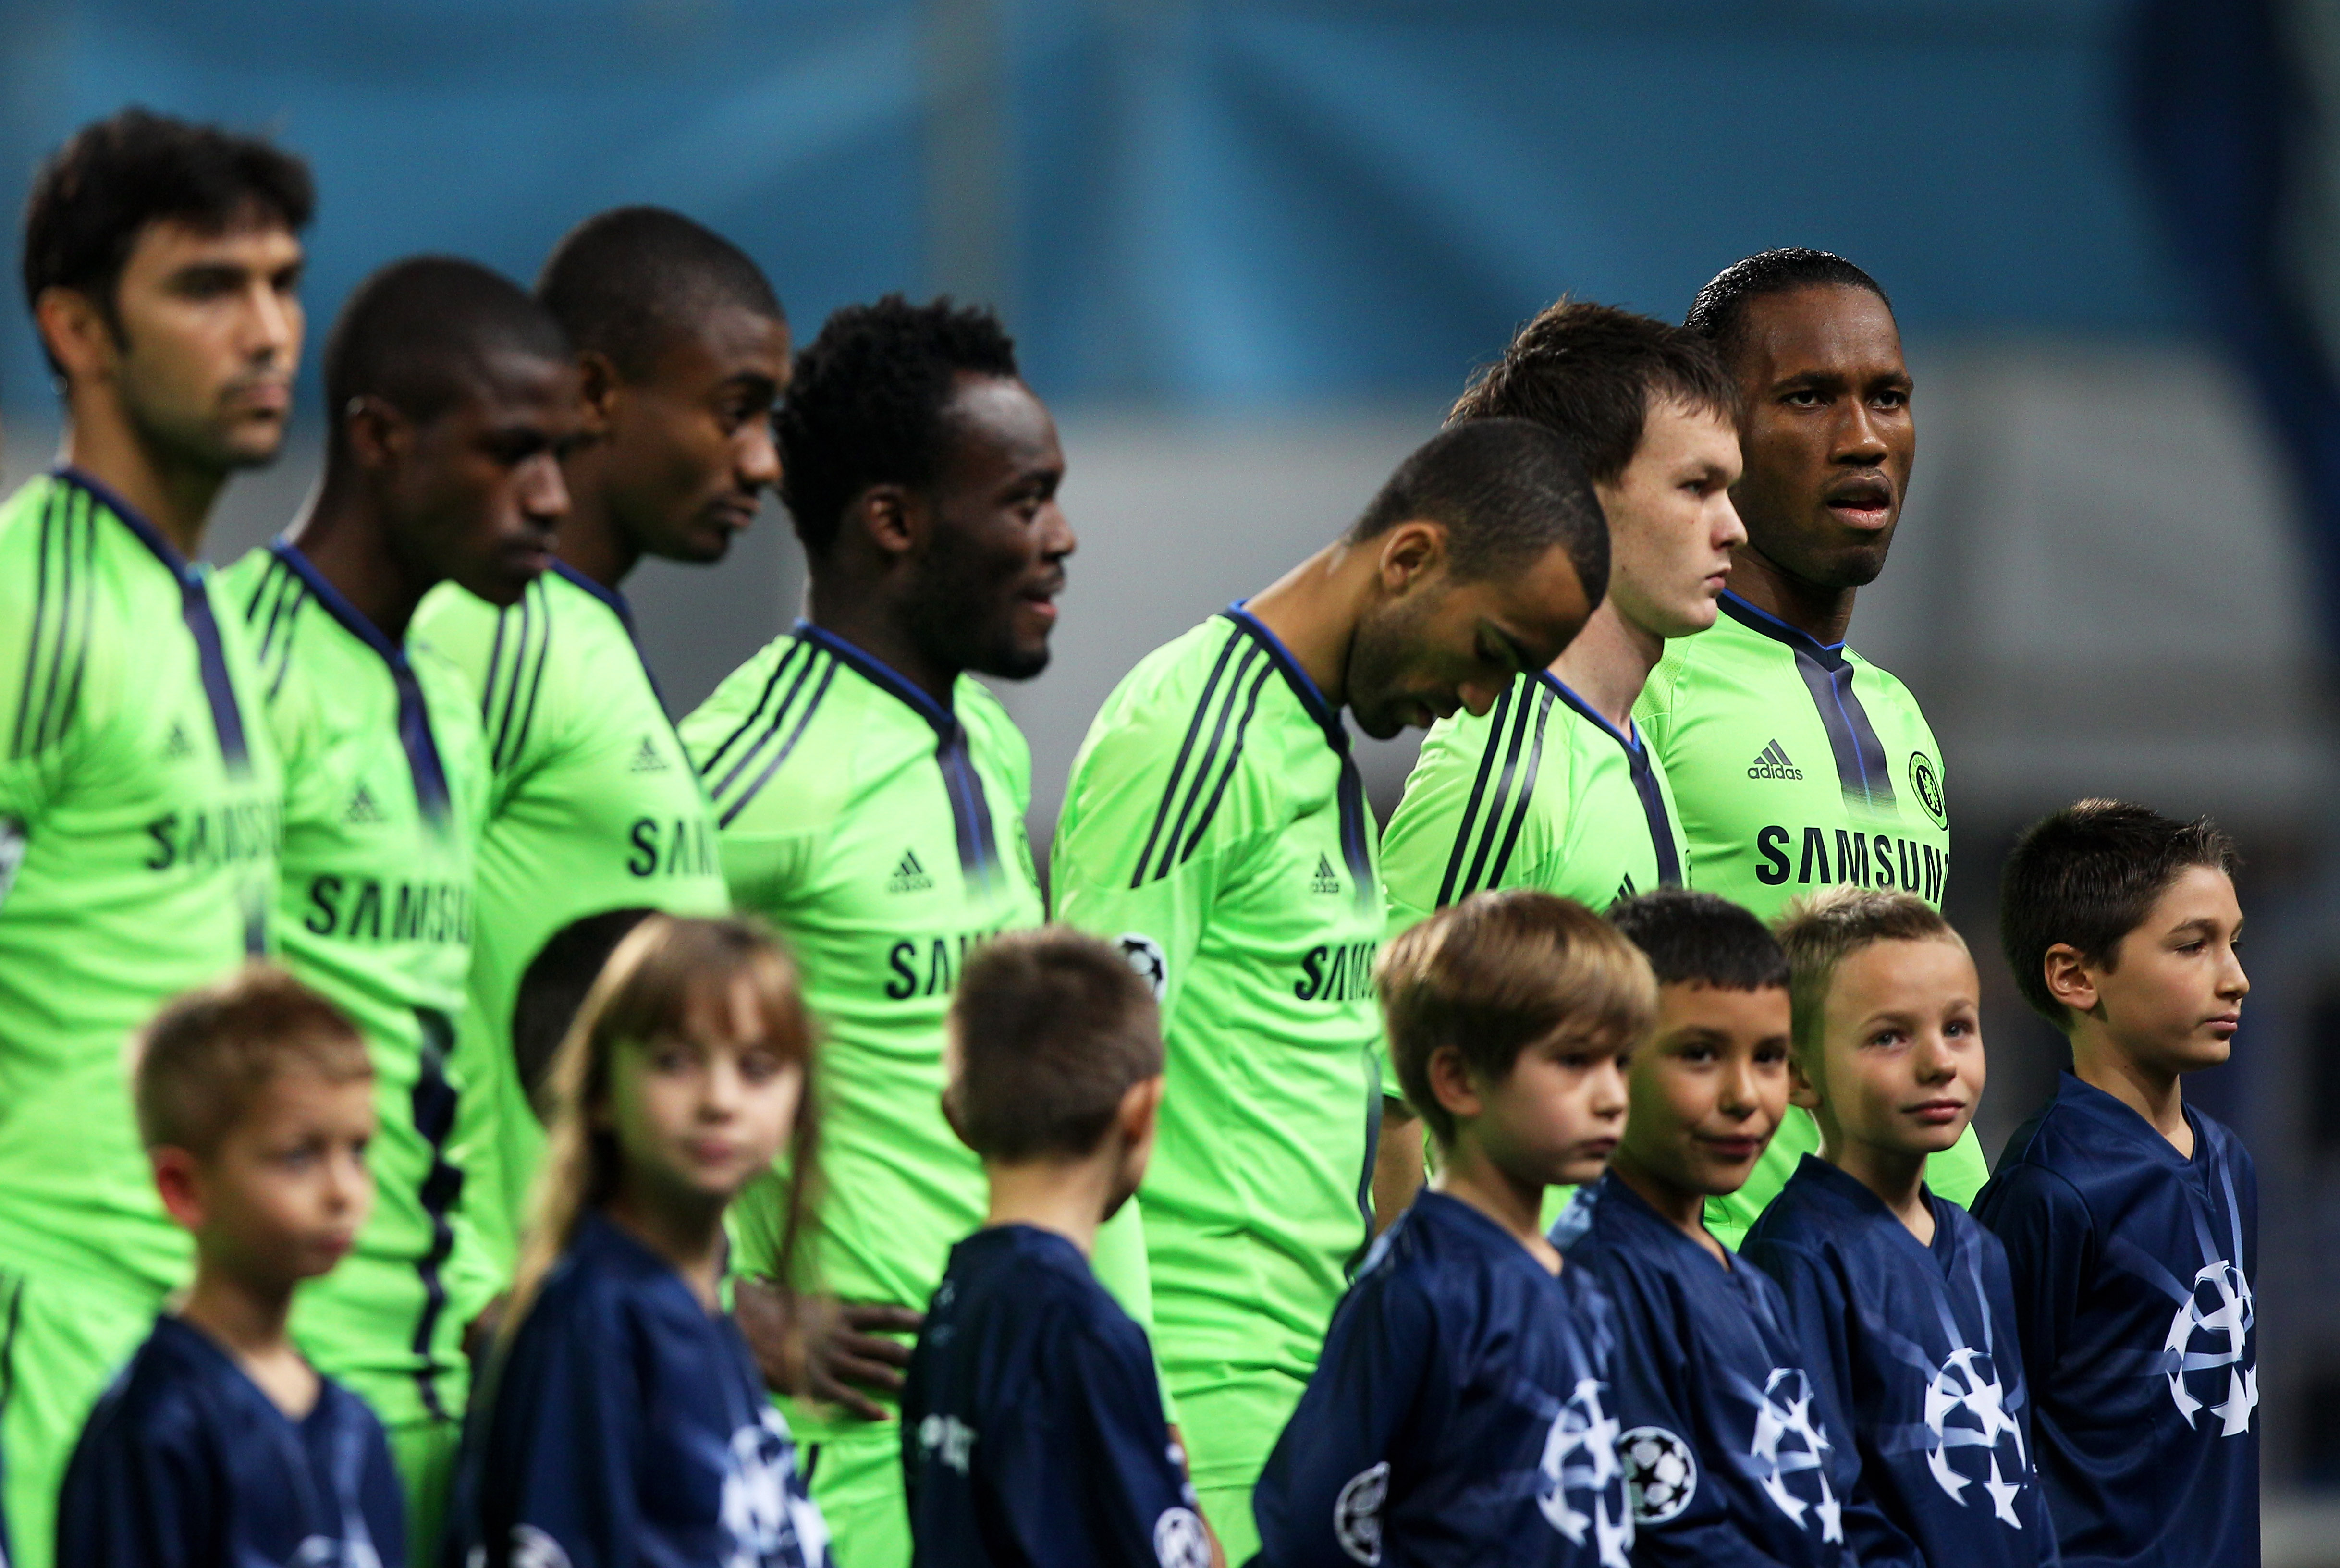 MARSEILLE, FRANCE - DECEMBER 08:  Former Marseille striker Didier Drogba (R) of Chelsea looks on prior to kickoff during the UEFA Champions League Group F match between Marseille and Chelsea at the Stade Velodrome on December 8, 2010 in Marseille, France.